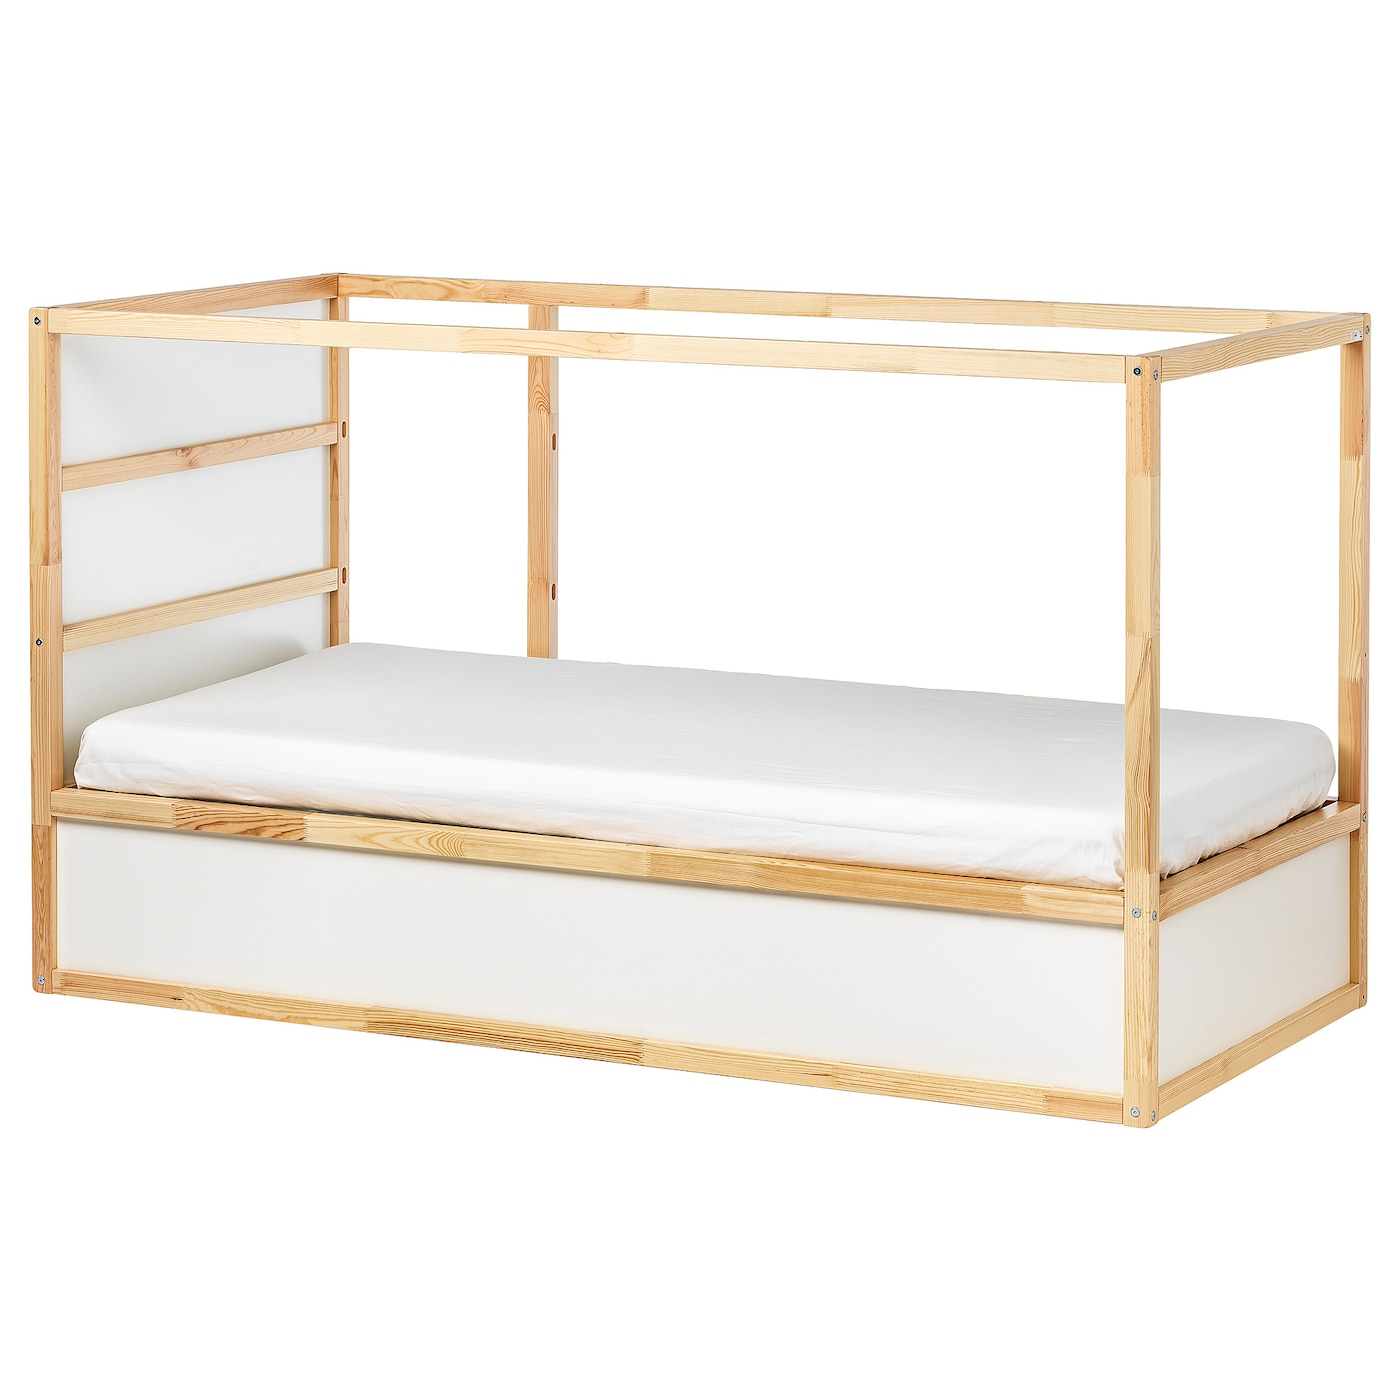 Kura Reversible Bed White Pine 90 X 200 Cm Ikea